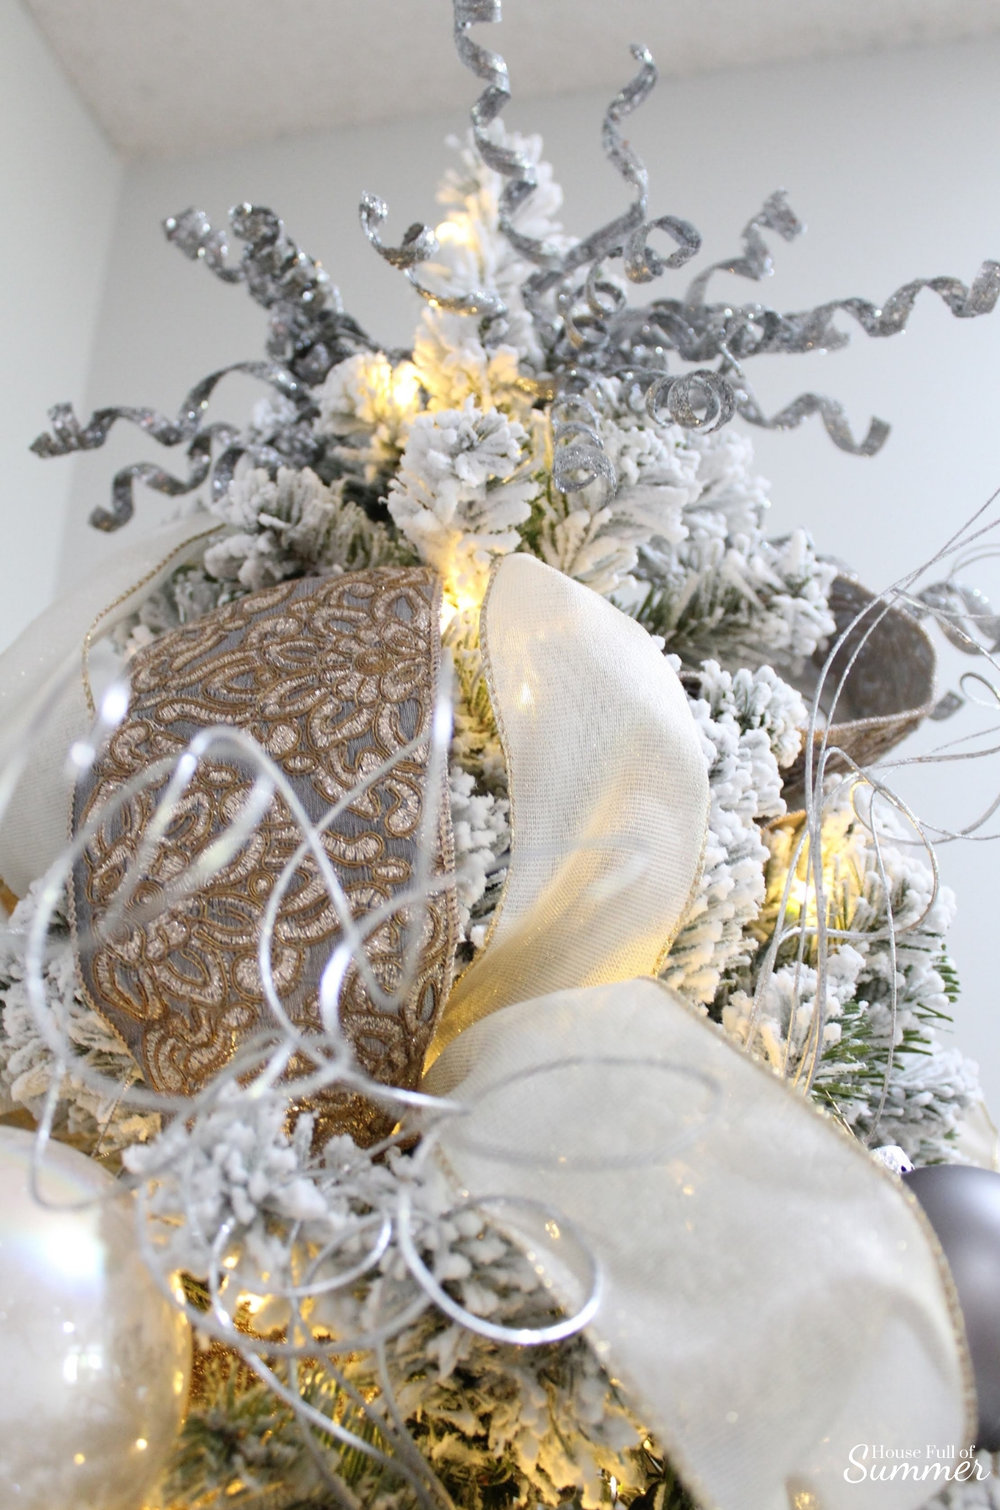 Southern Glam Christmas Decor | How to decorate your Christmas tree with Southern charm! Neutral glam Christmas decor, velvet ribbon, luxurious, elegant Christmas tree decorations, silver, gold and white, coastal decor, magnolia sprays, gold magnolia leaves